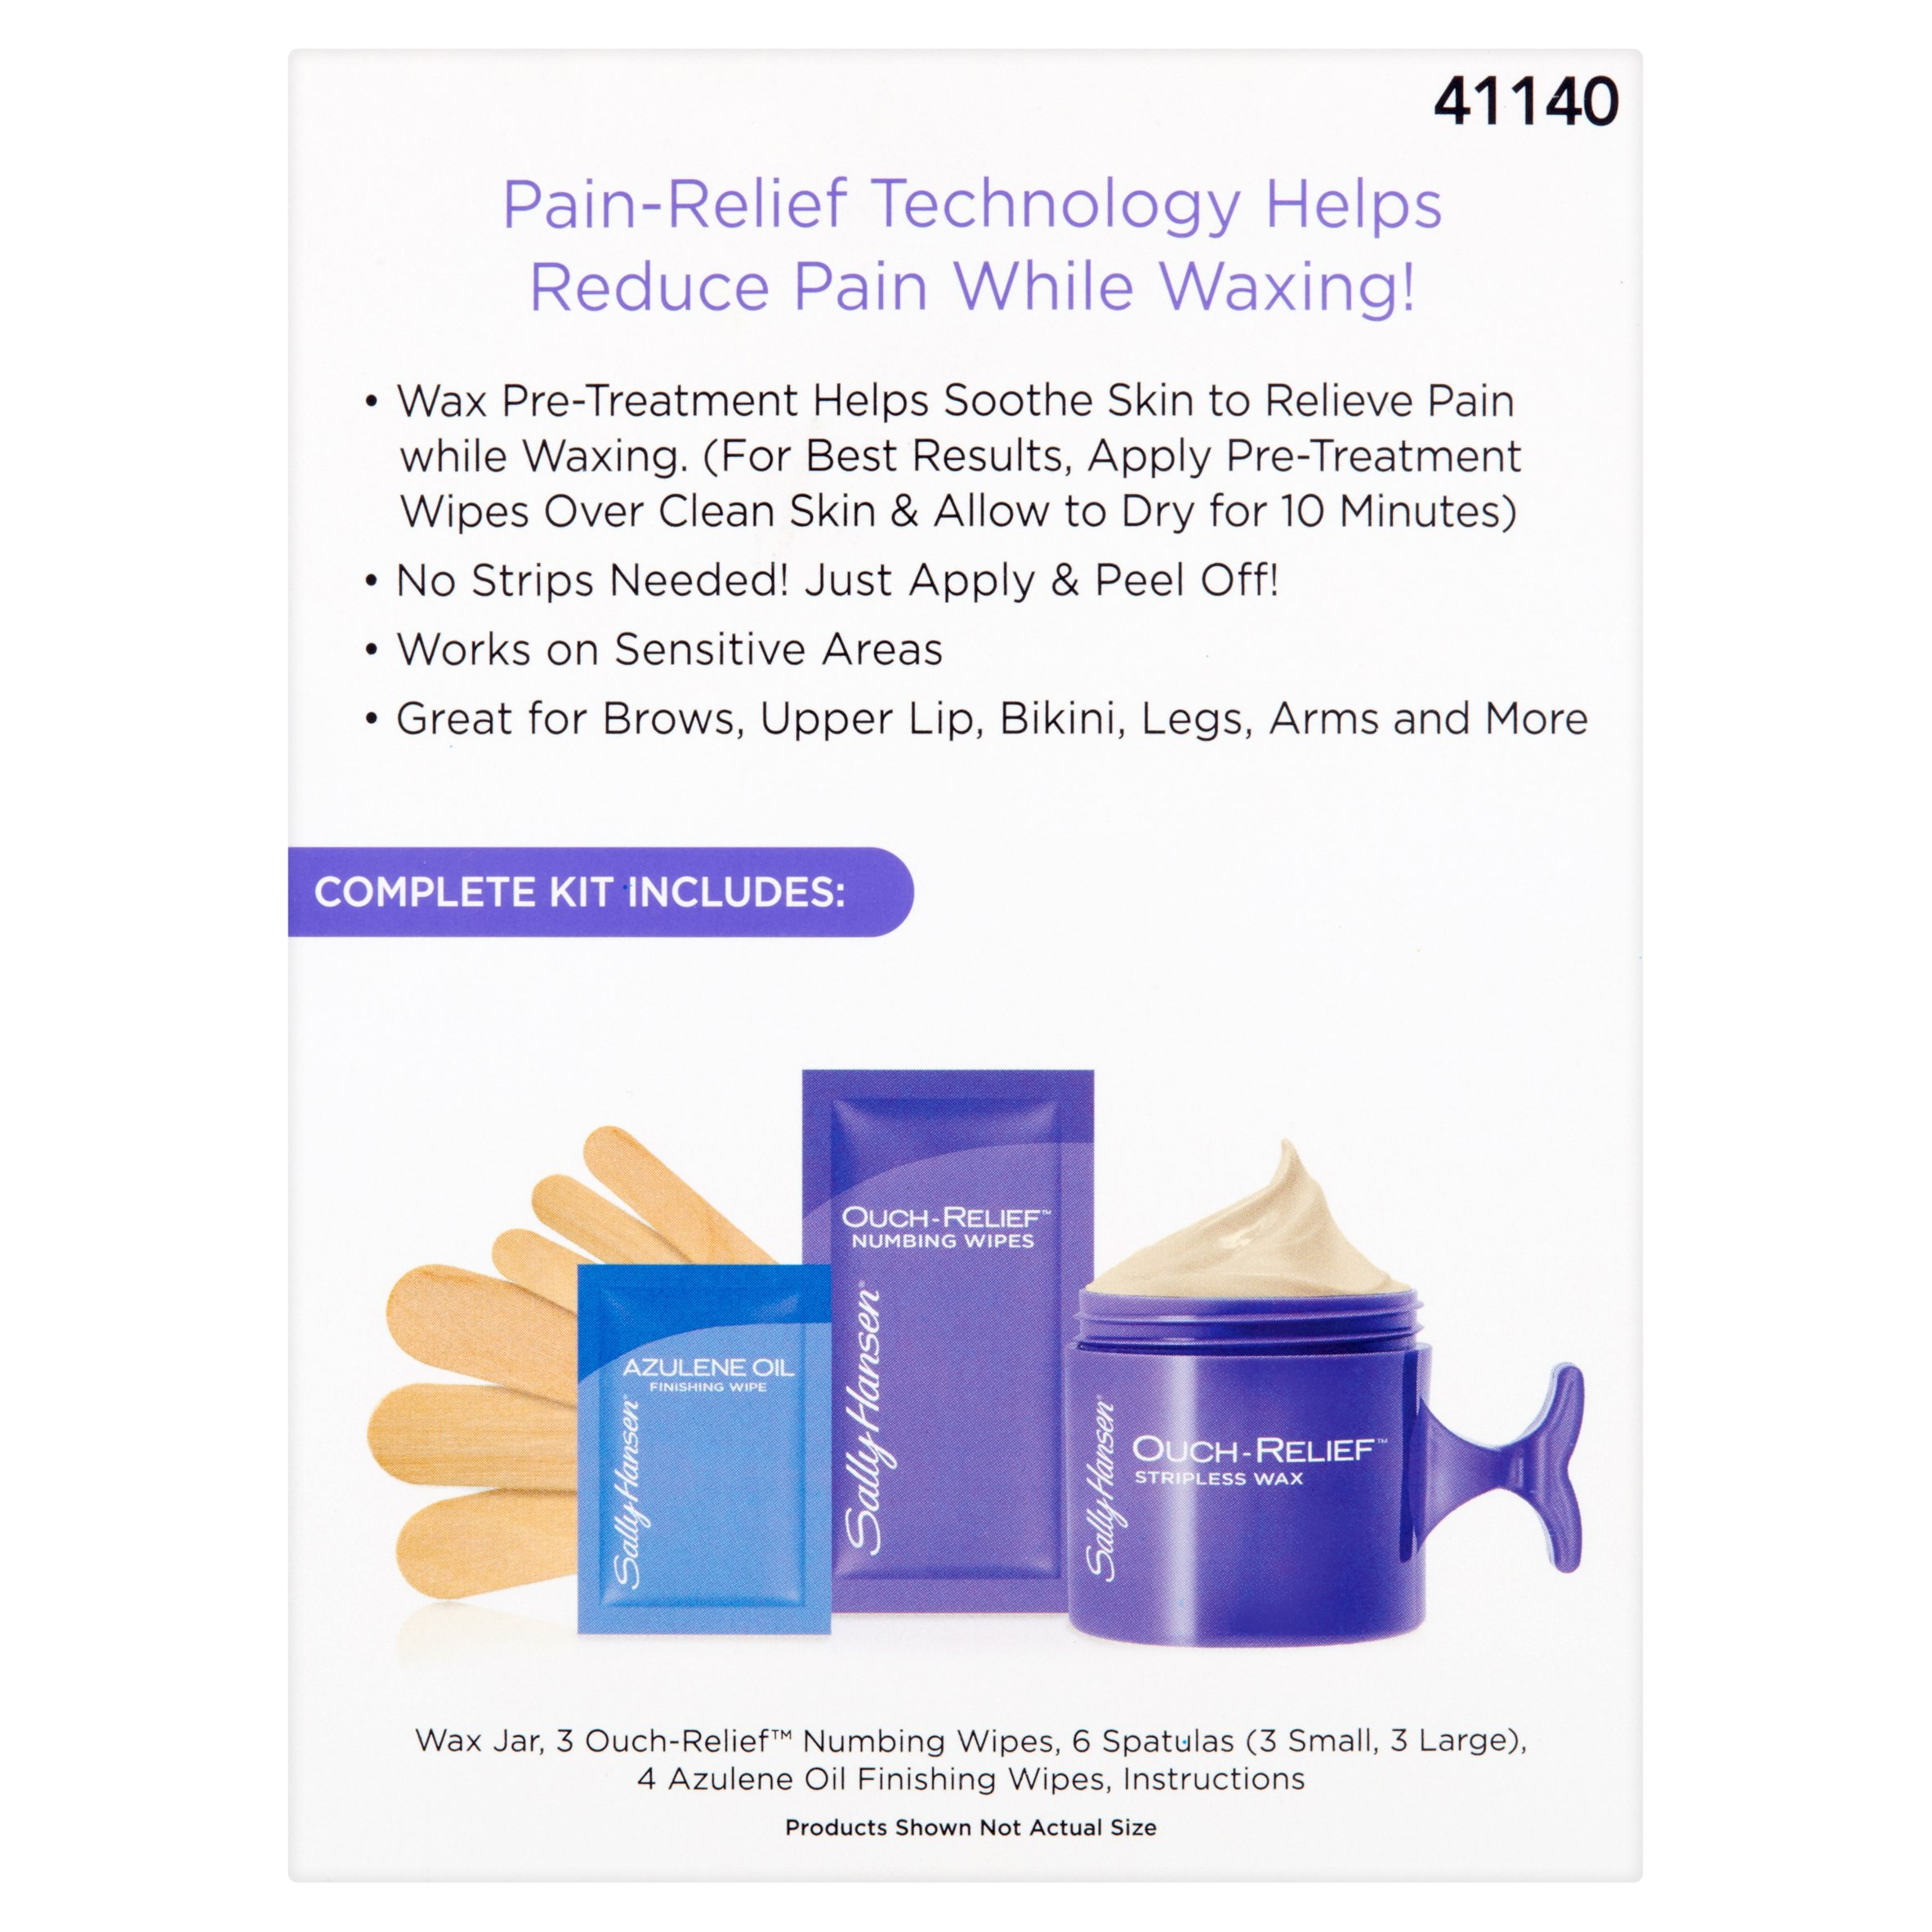 Sally Hansen Ouch-Relief Stripless Hard Wax Kit Hair Remover, 3 pc